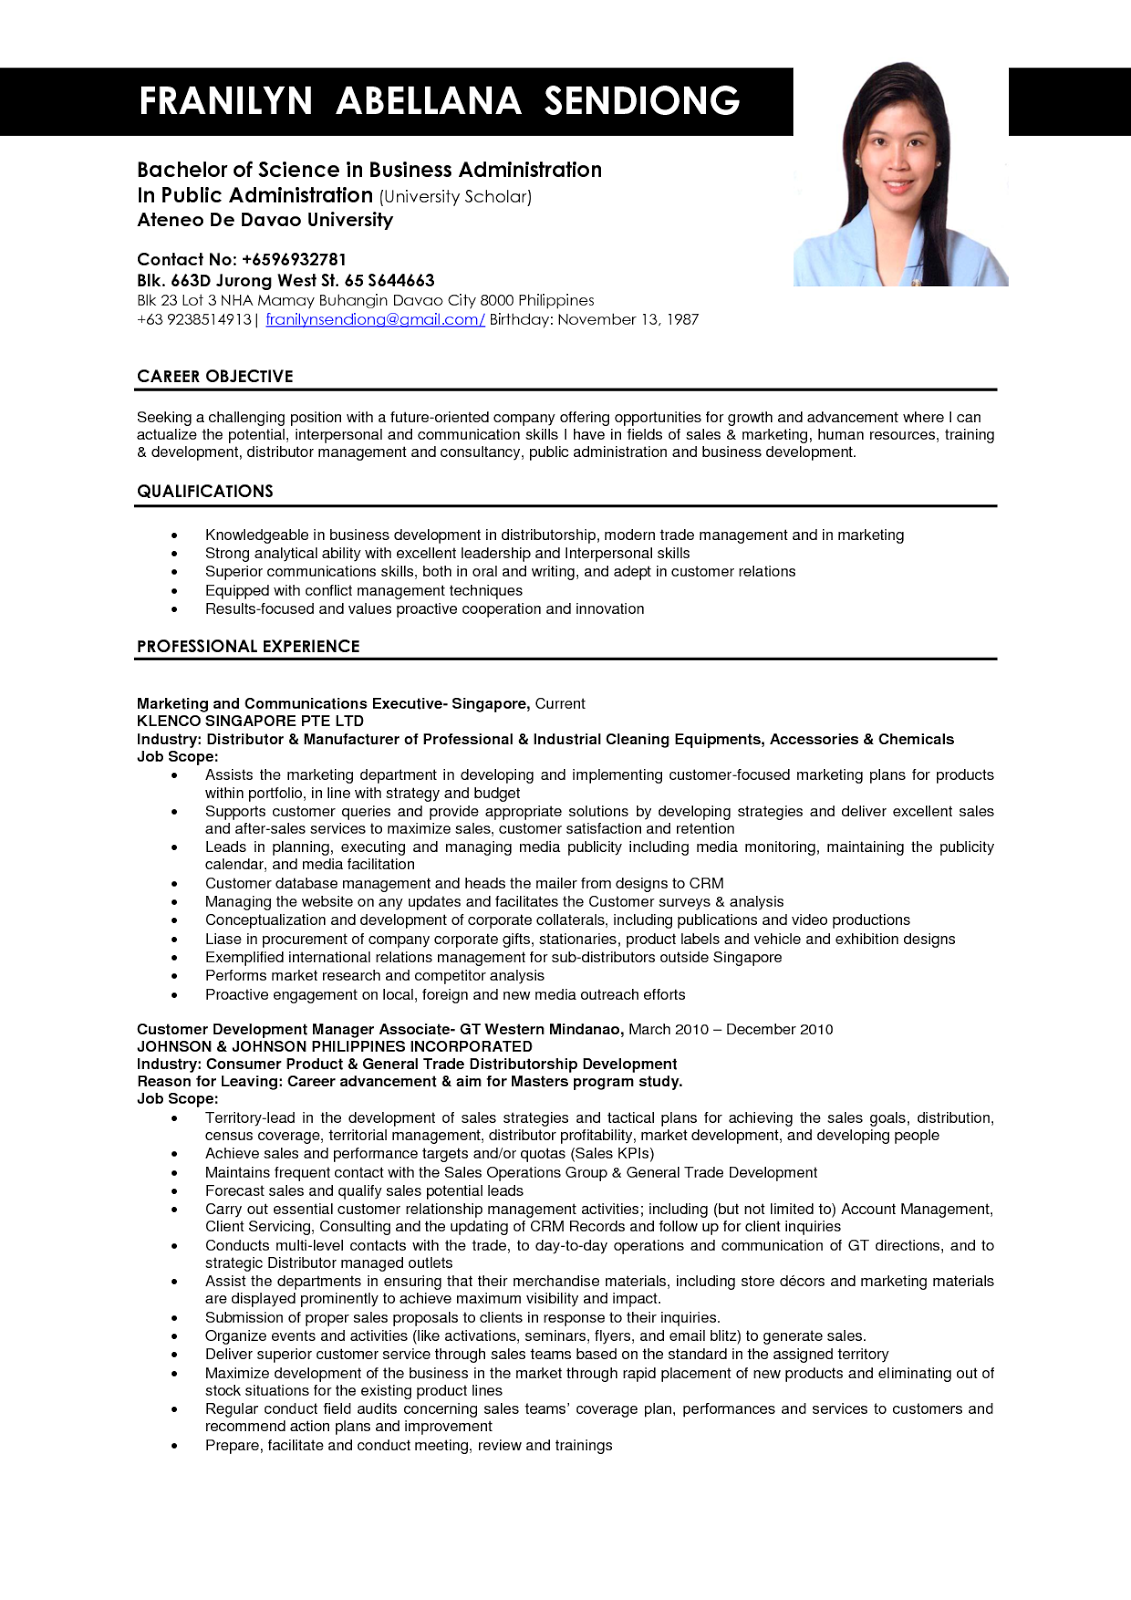 Now, Take A Good Look And Make Your Resume Become A Great While Fabulous  Moment. So, Have A Great Time For Your Resume. They Are So Useful.  Business Administration Resume